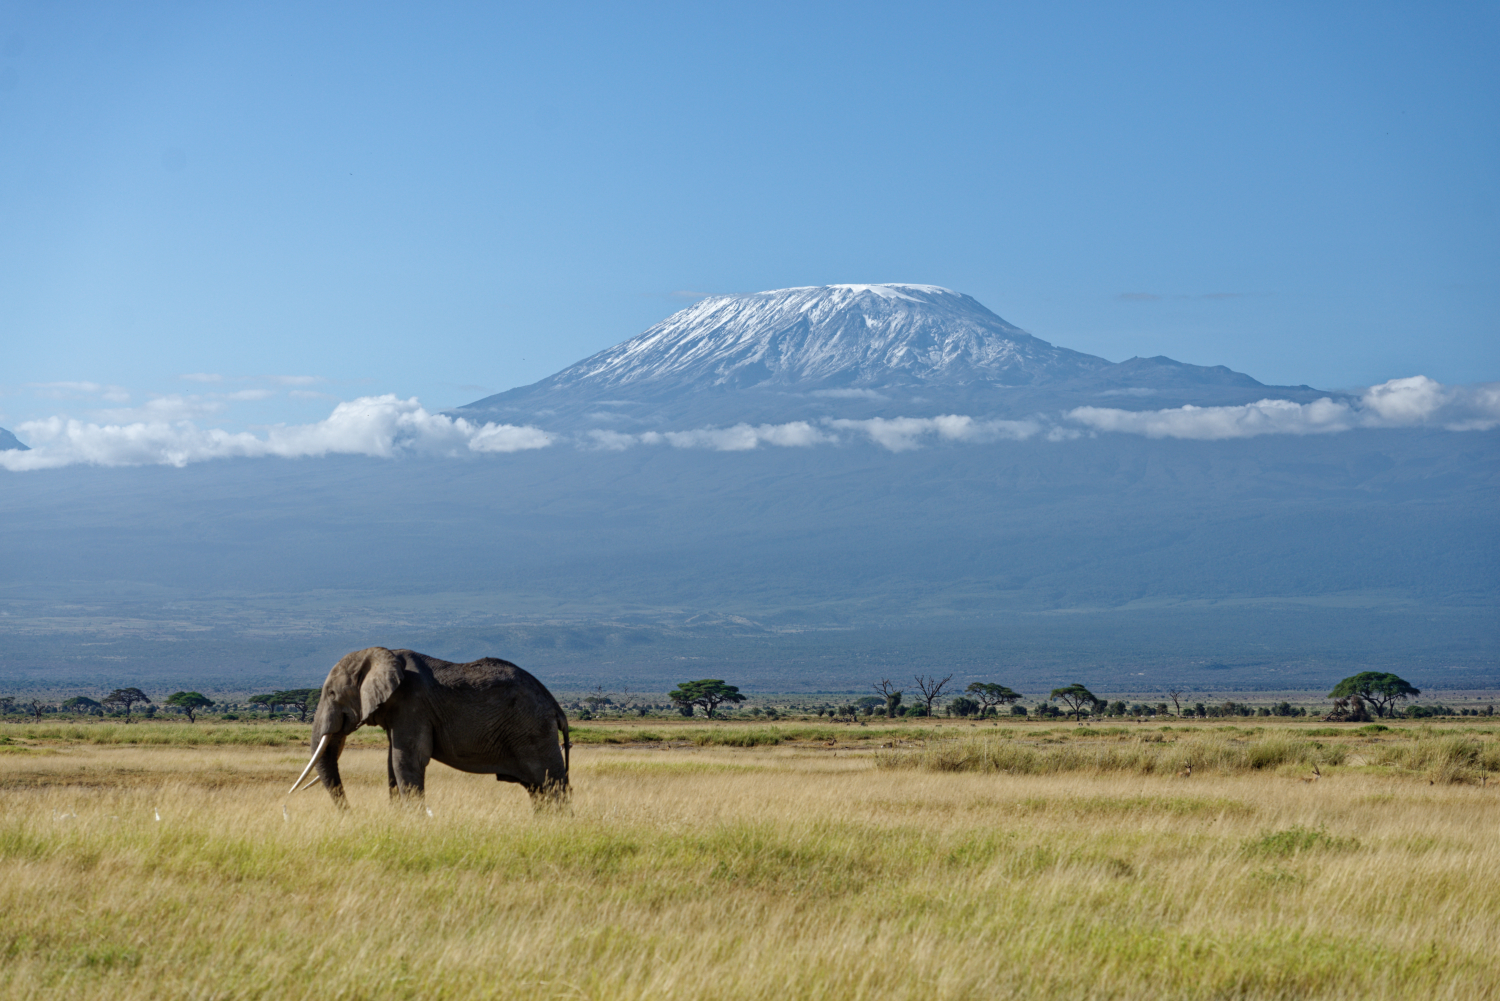 IFAW Secures 29,000 Acres of Wildlife Habitat in Kenya With Community Support